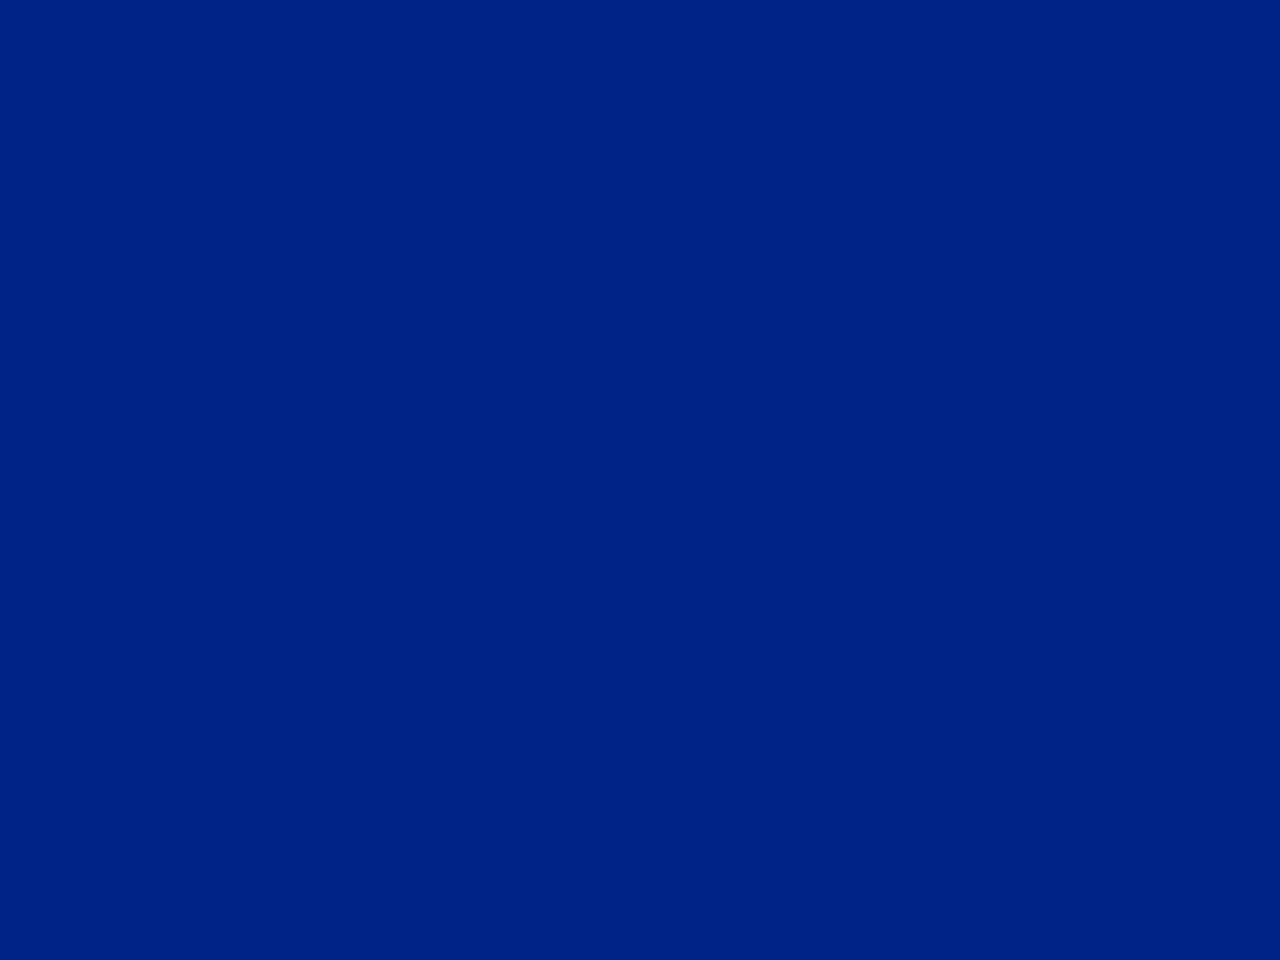 1280x960 Resolution Blue Solid Color Background